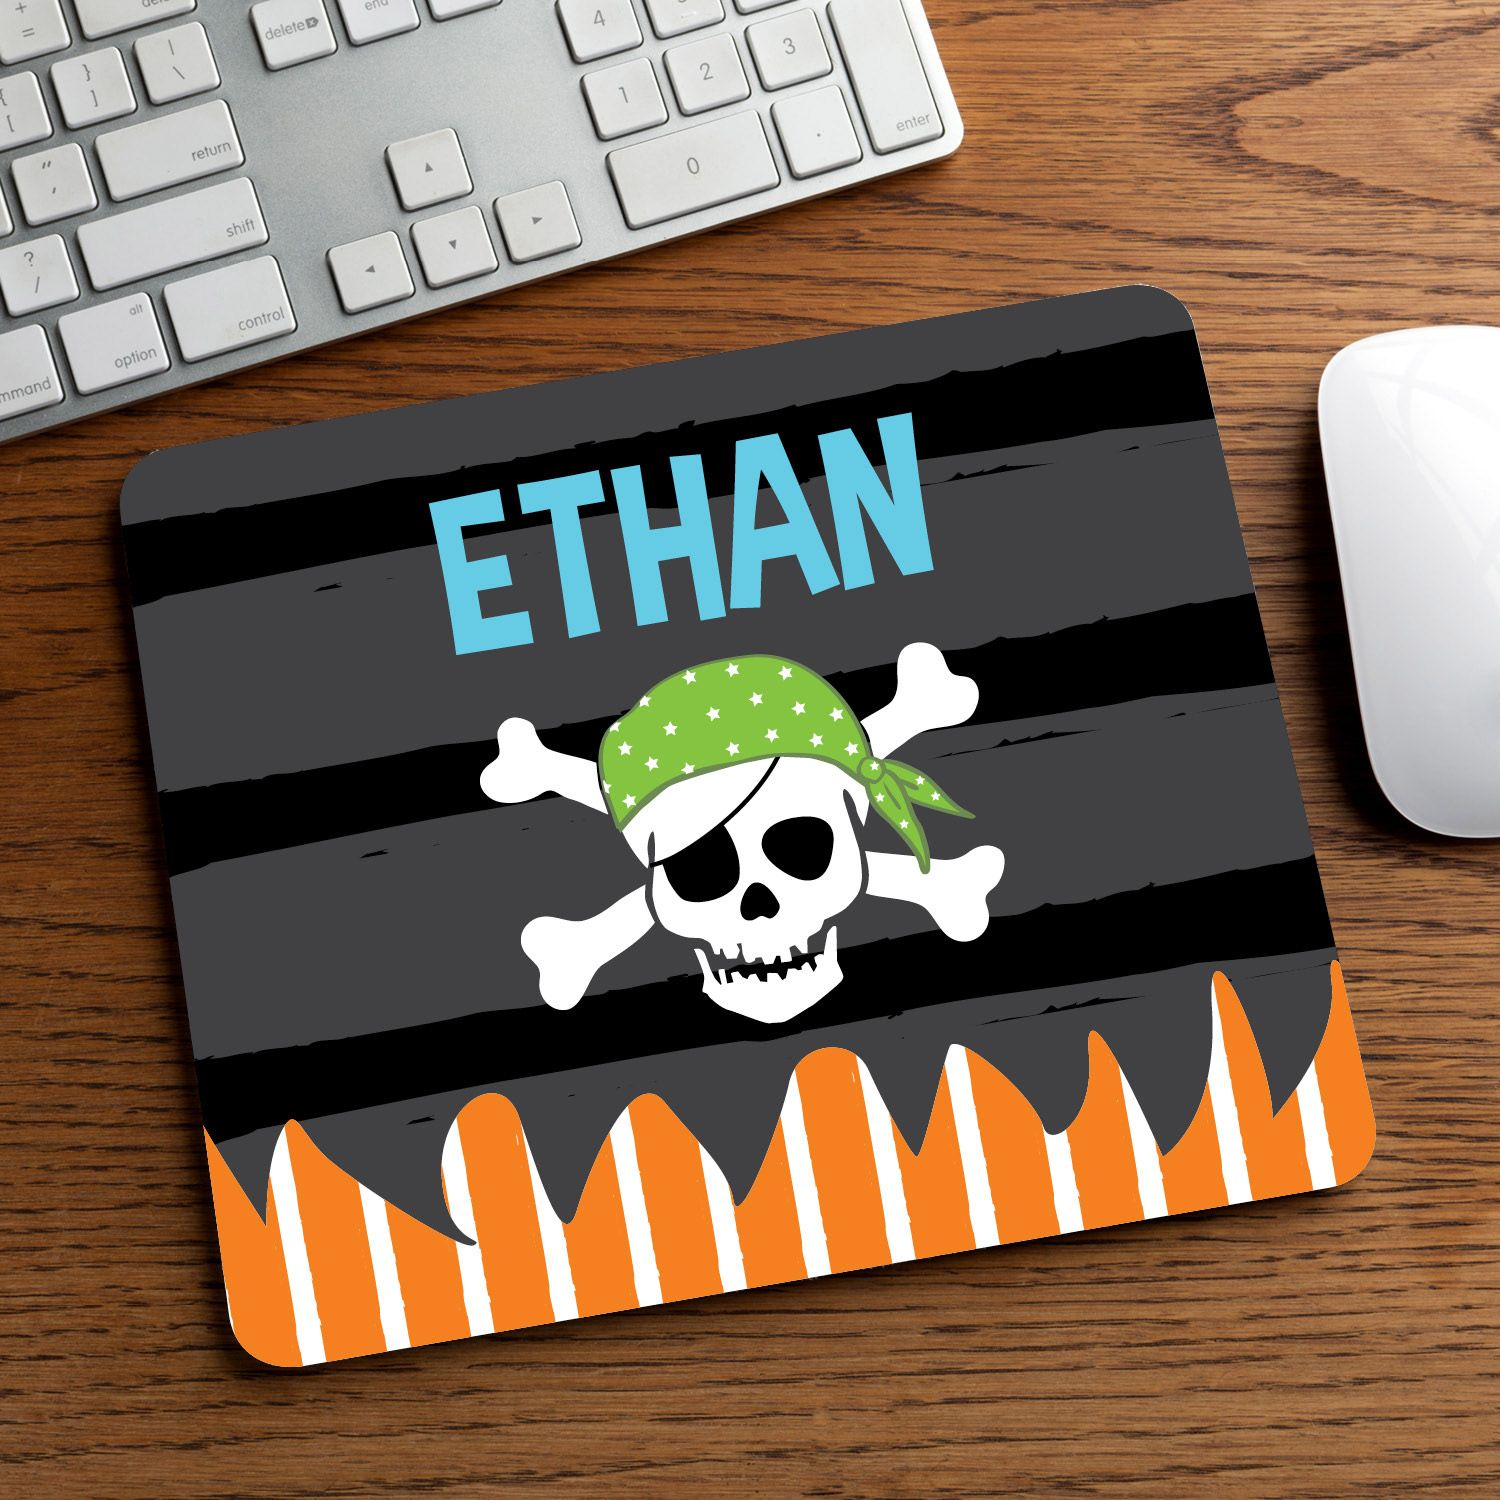 Give a pirate this personalized mouse pad!